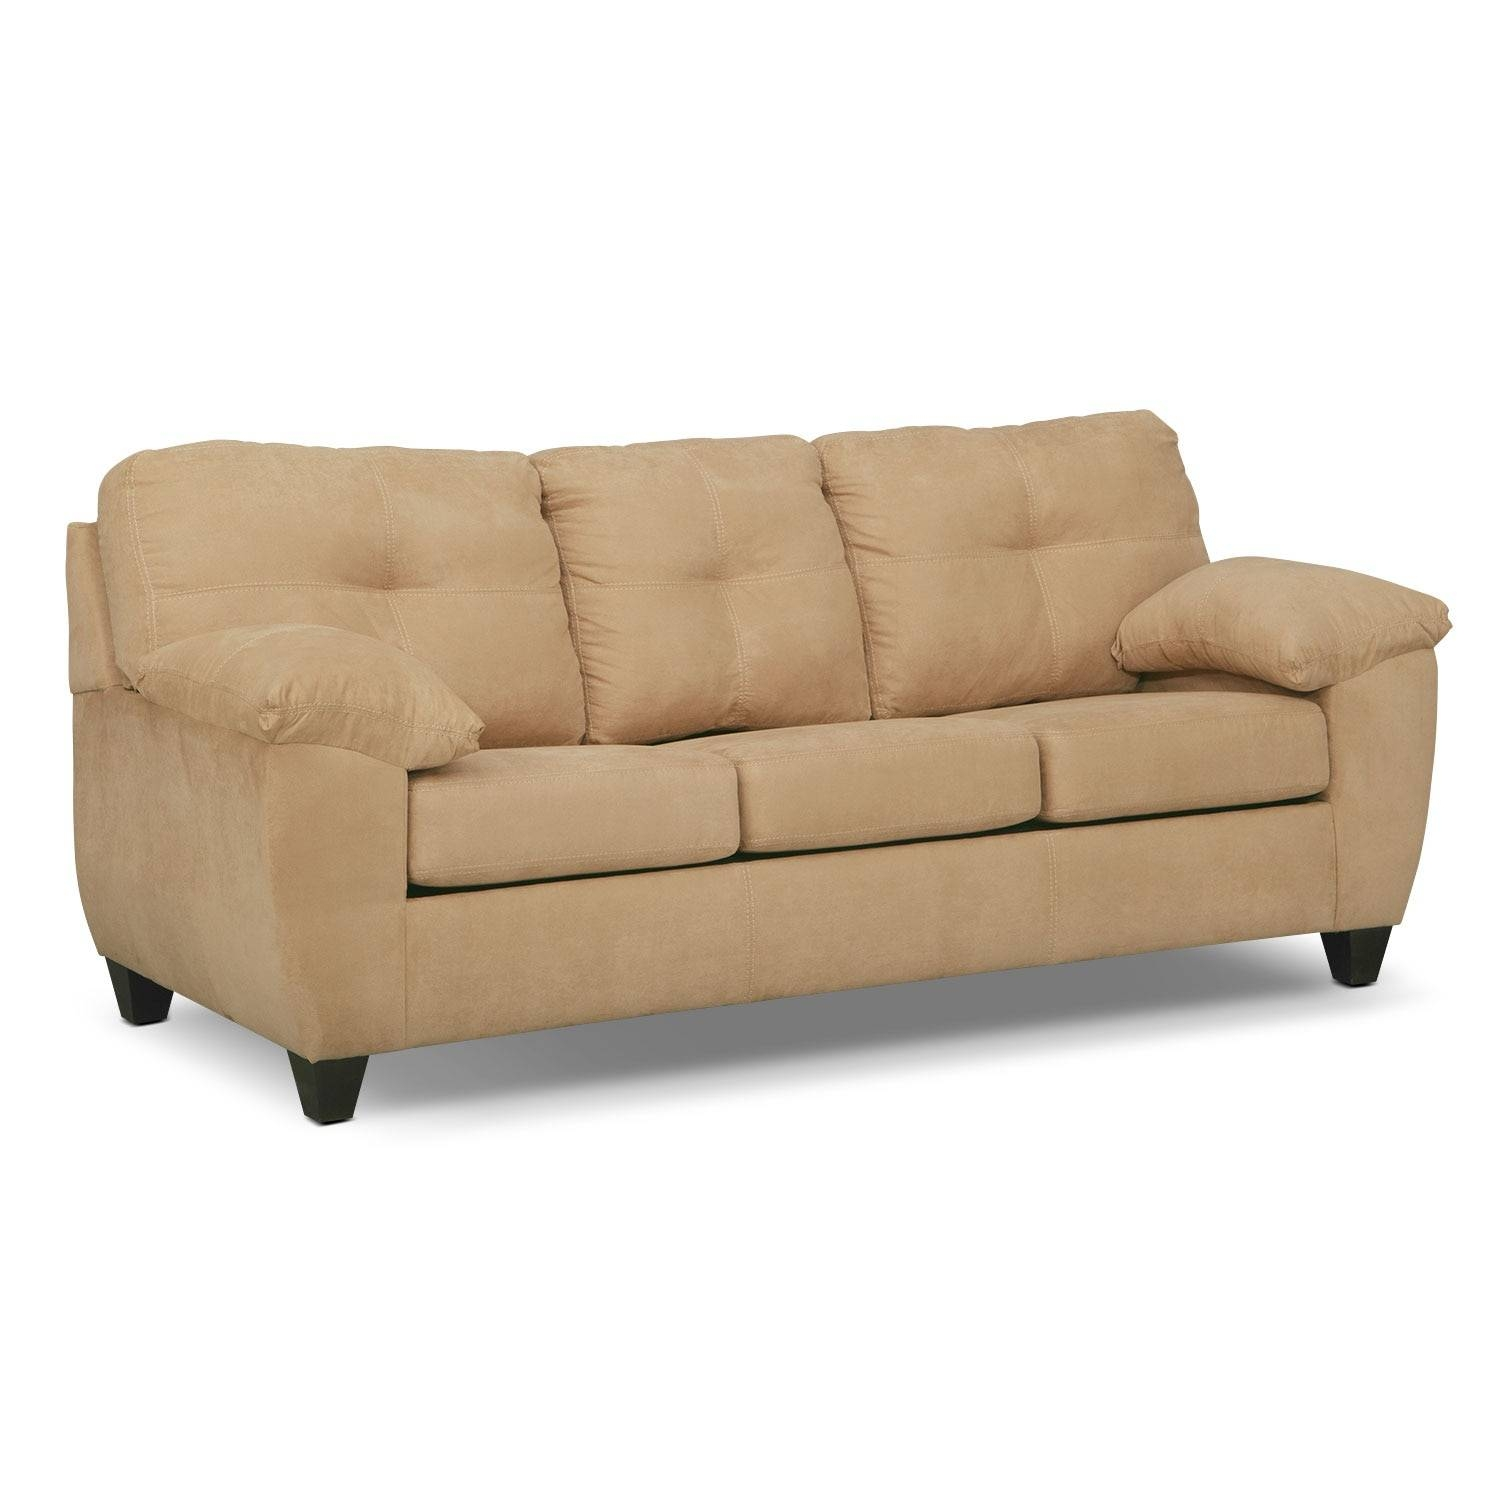 Sleeper Sofas | Value City Furniture | Value City Furniture For Sofa Sleepers Queen Size (View 15 of 30)